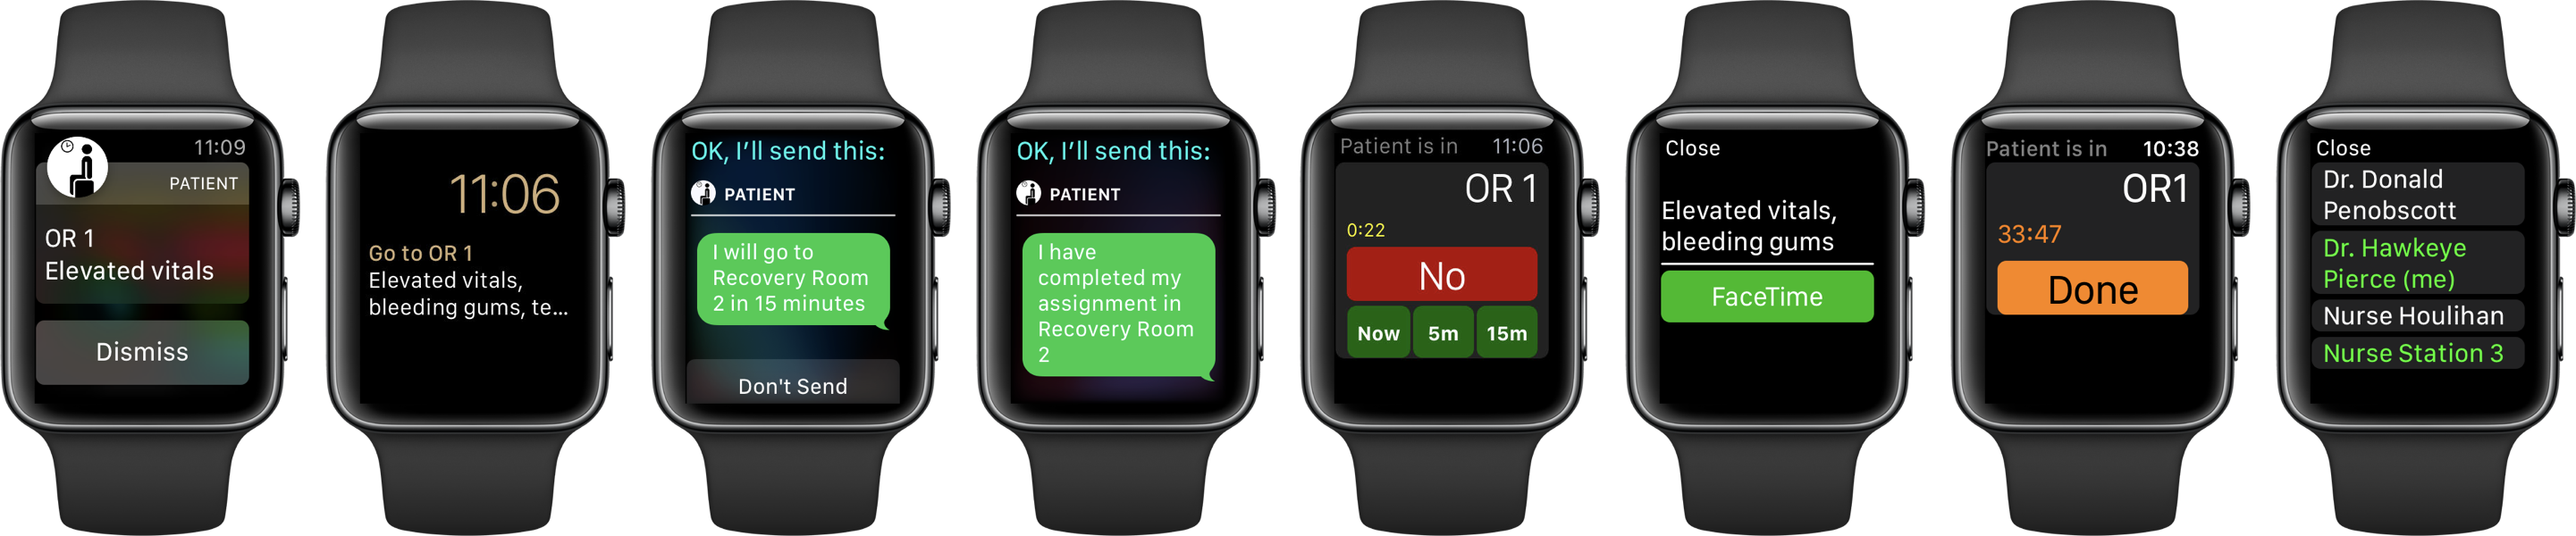 The Doctor app for Apple Watch provides complete access to patient assignments and telehealth services.